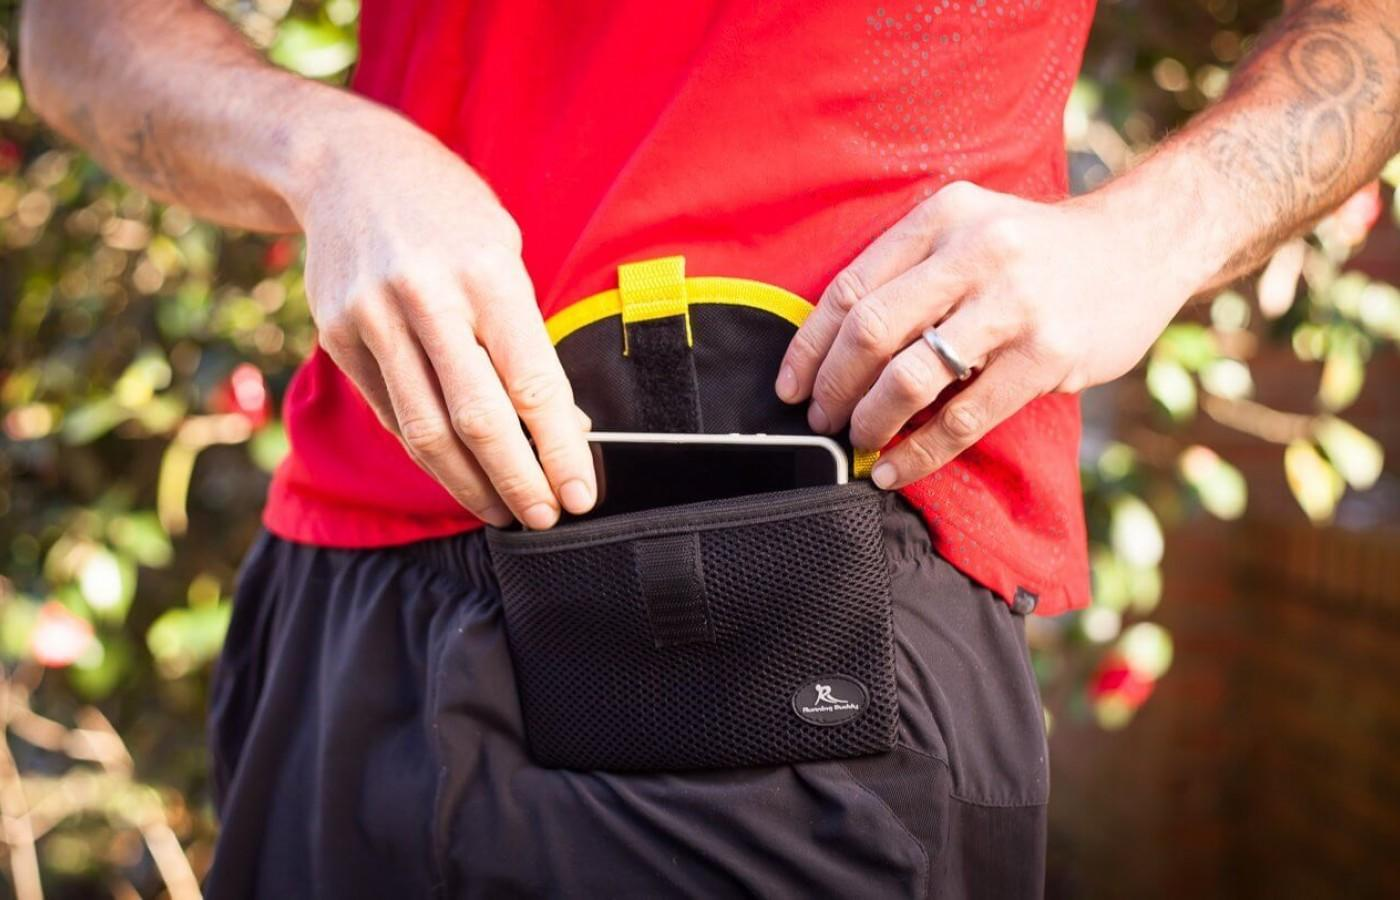 the buddy pouch has strong magnets that connect to the waist band of your pants or shorts